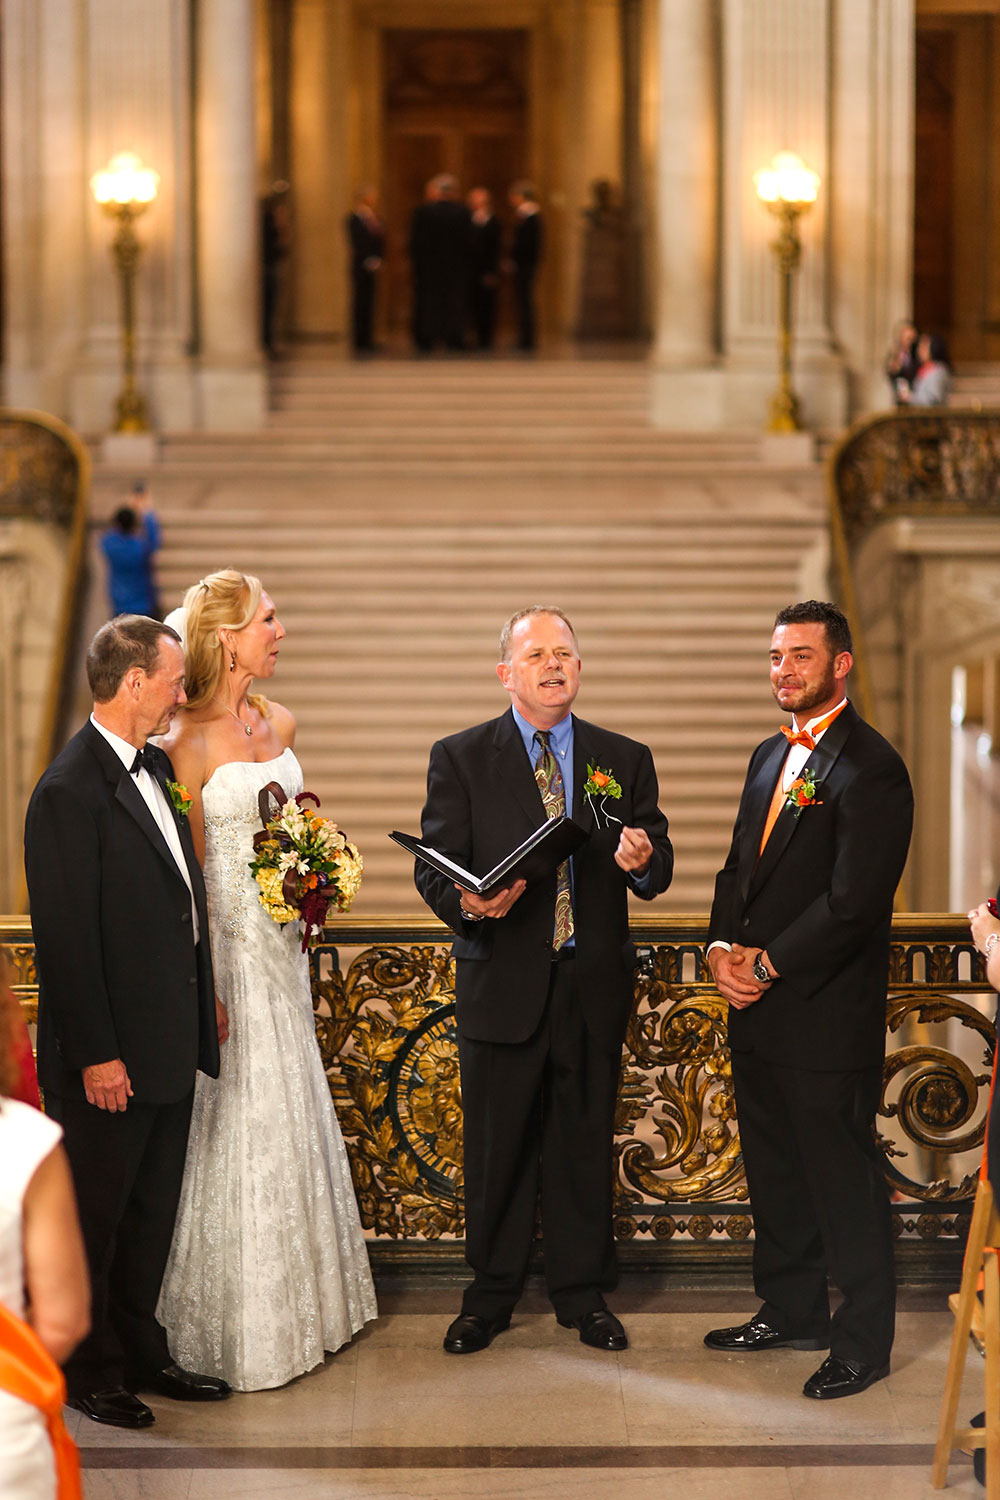 Wedding_Chicago_SanFrancisco_Gilker_Hart_007.JPG